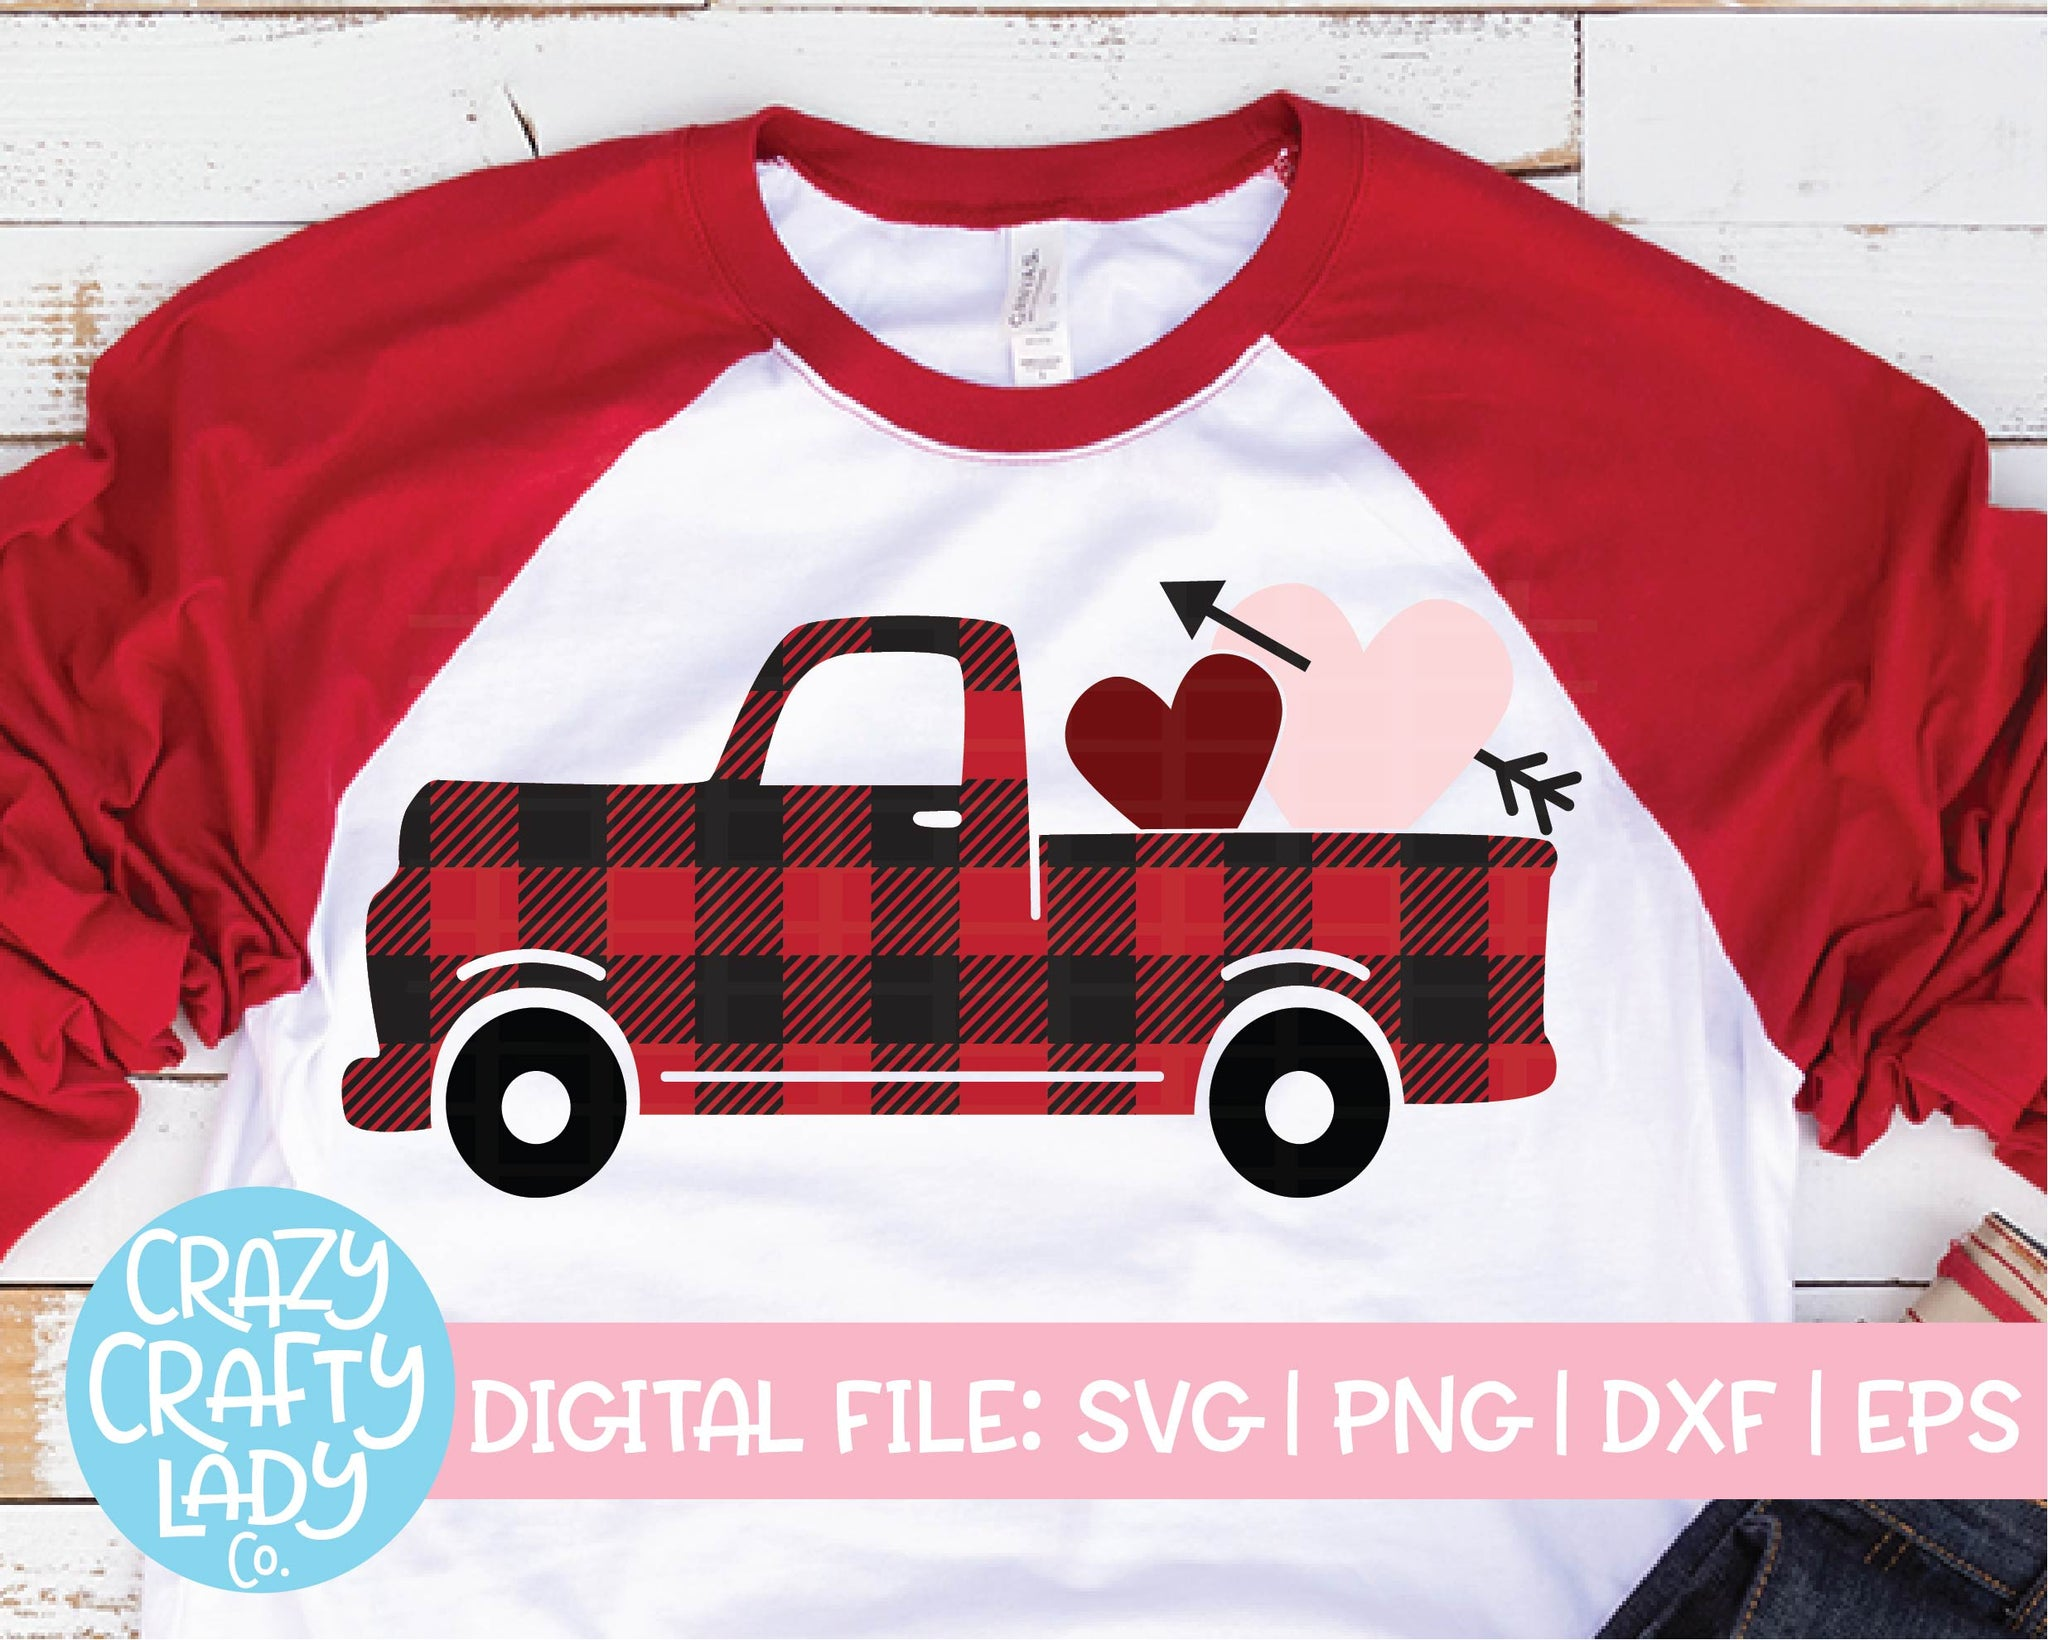 Buffalo Plaid Valentine S Day Truck Svg Cut File Crazy Crafty Lady Co